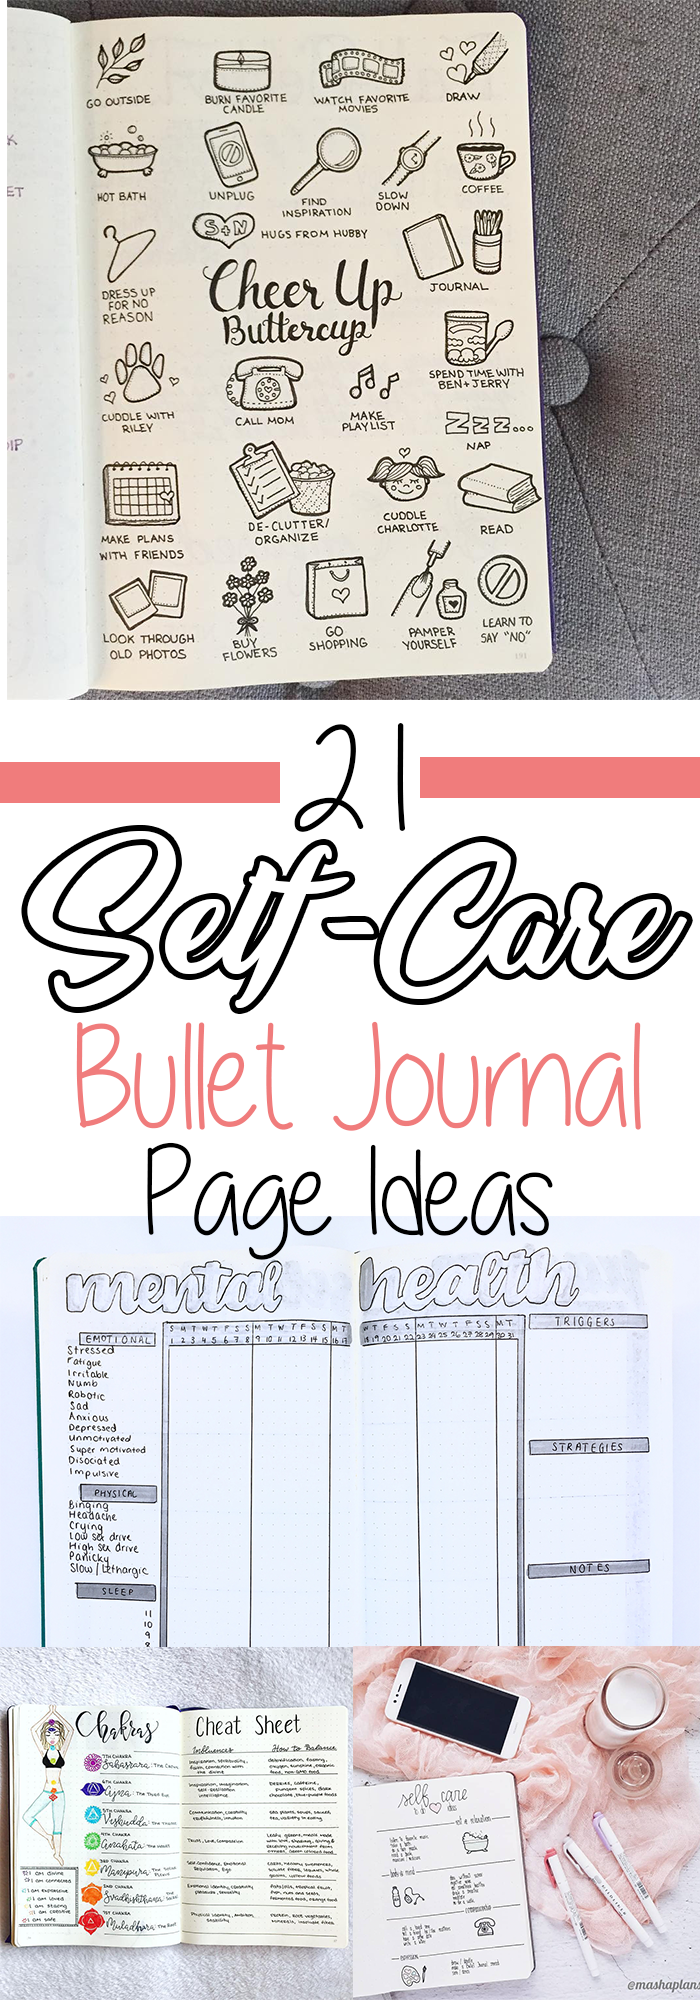 21 Motivational Self-Care Bullet Journal Pages You'll Want to Try ⋆ The Petite Planner